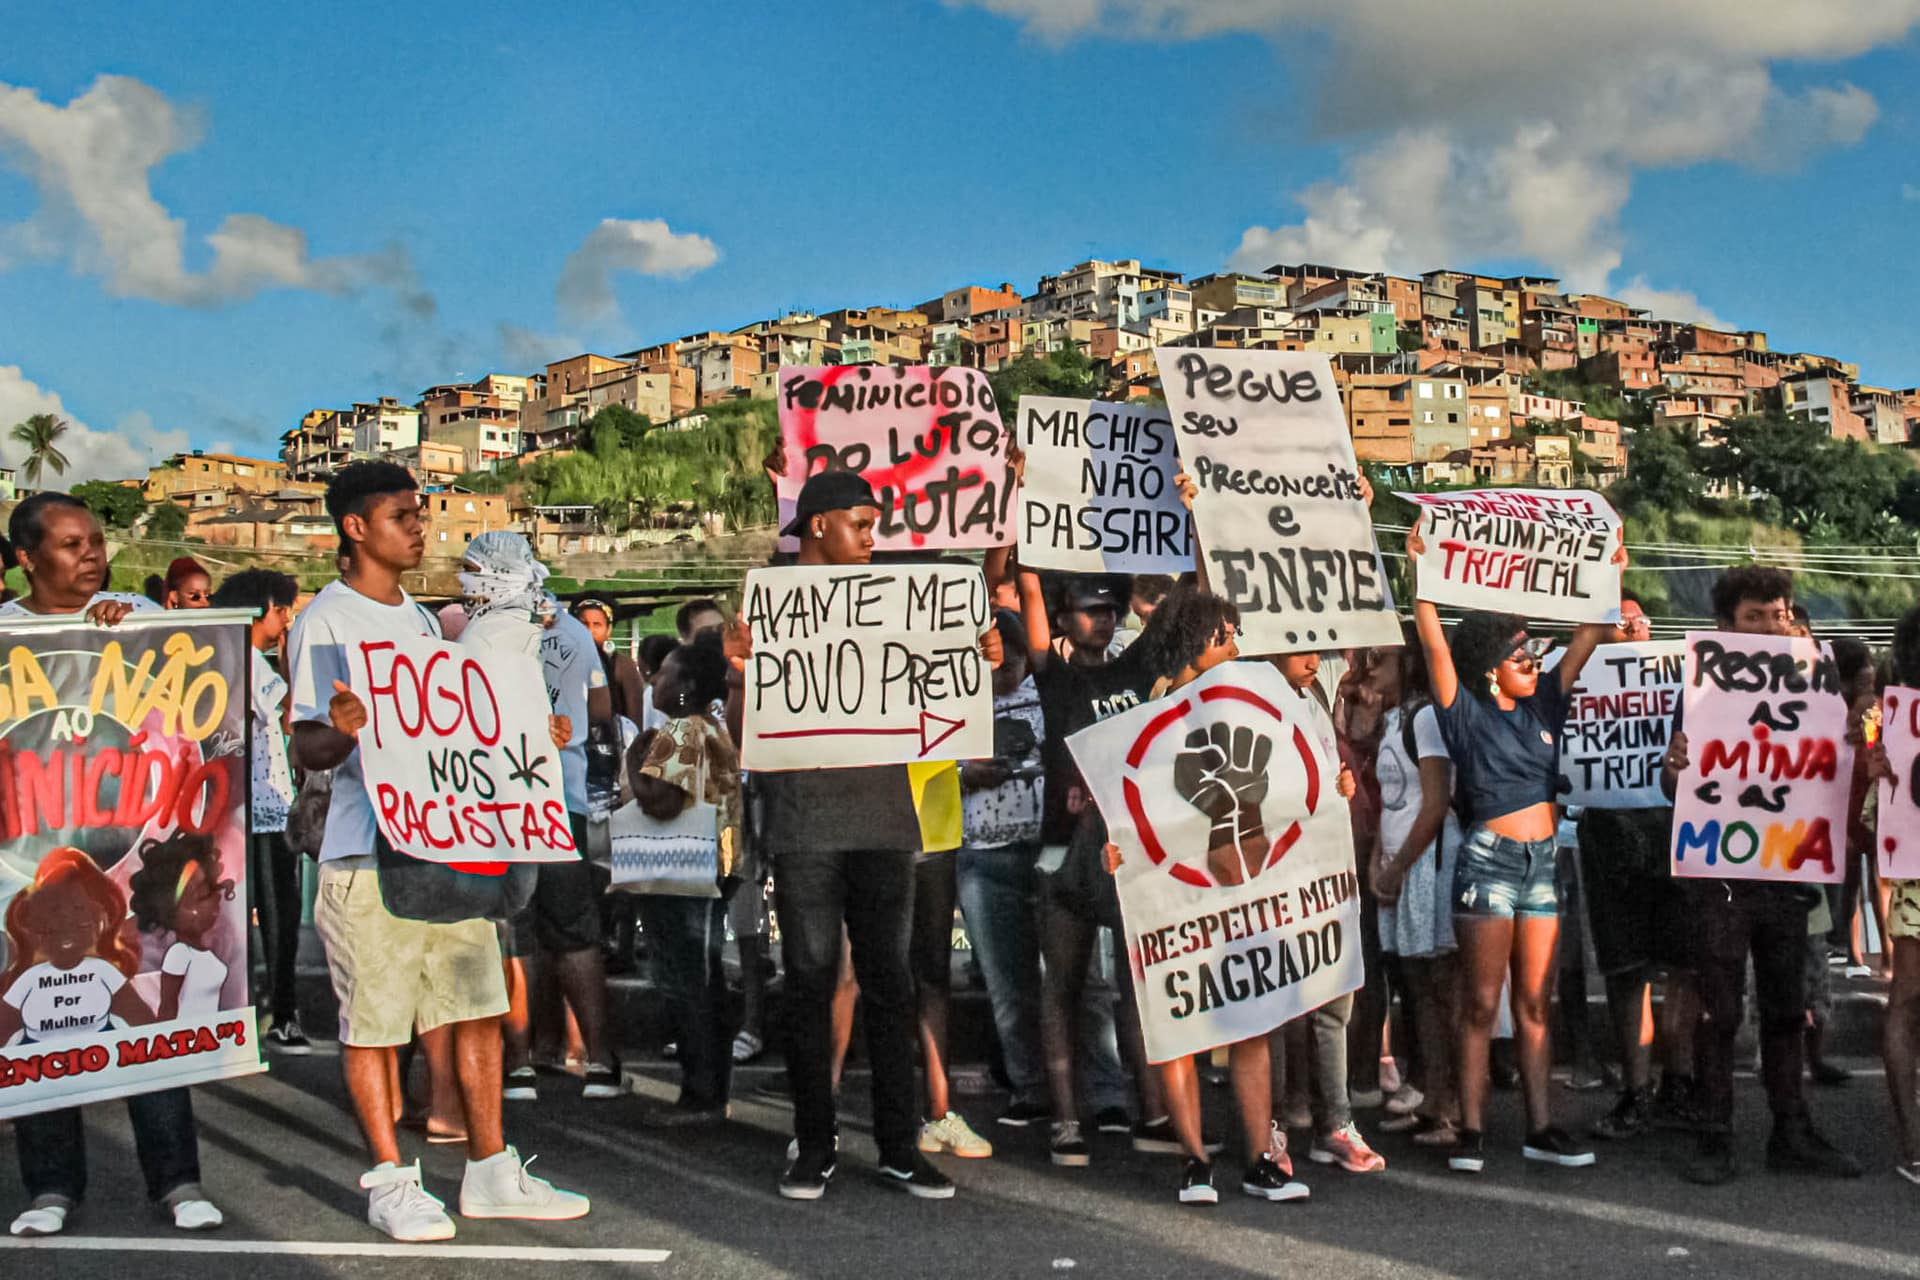 Young people holding up anti-gun shields, Portuguese slogans